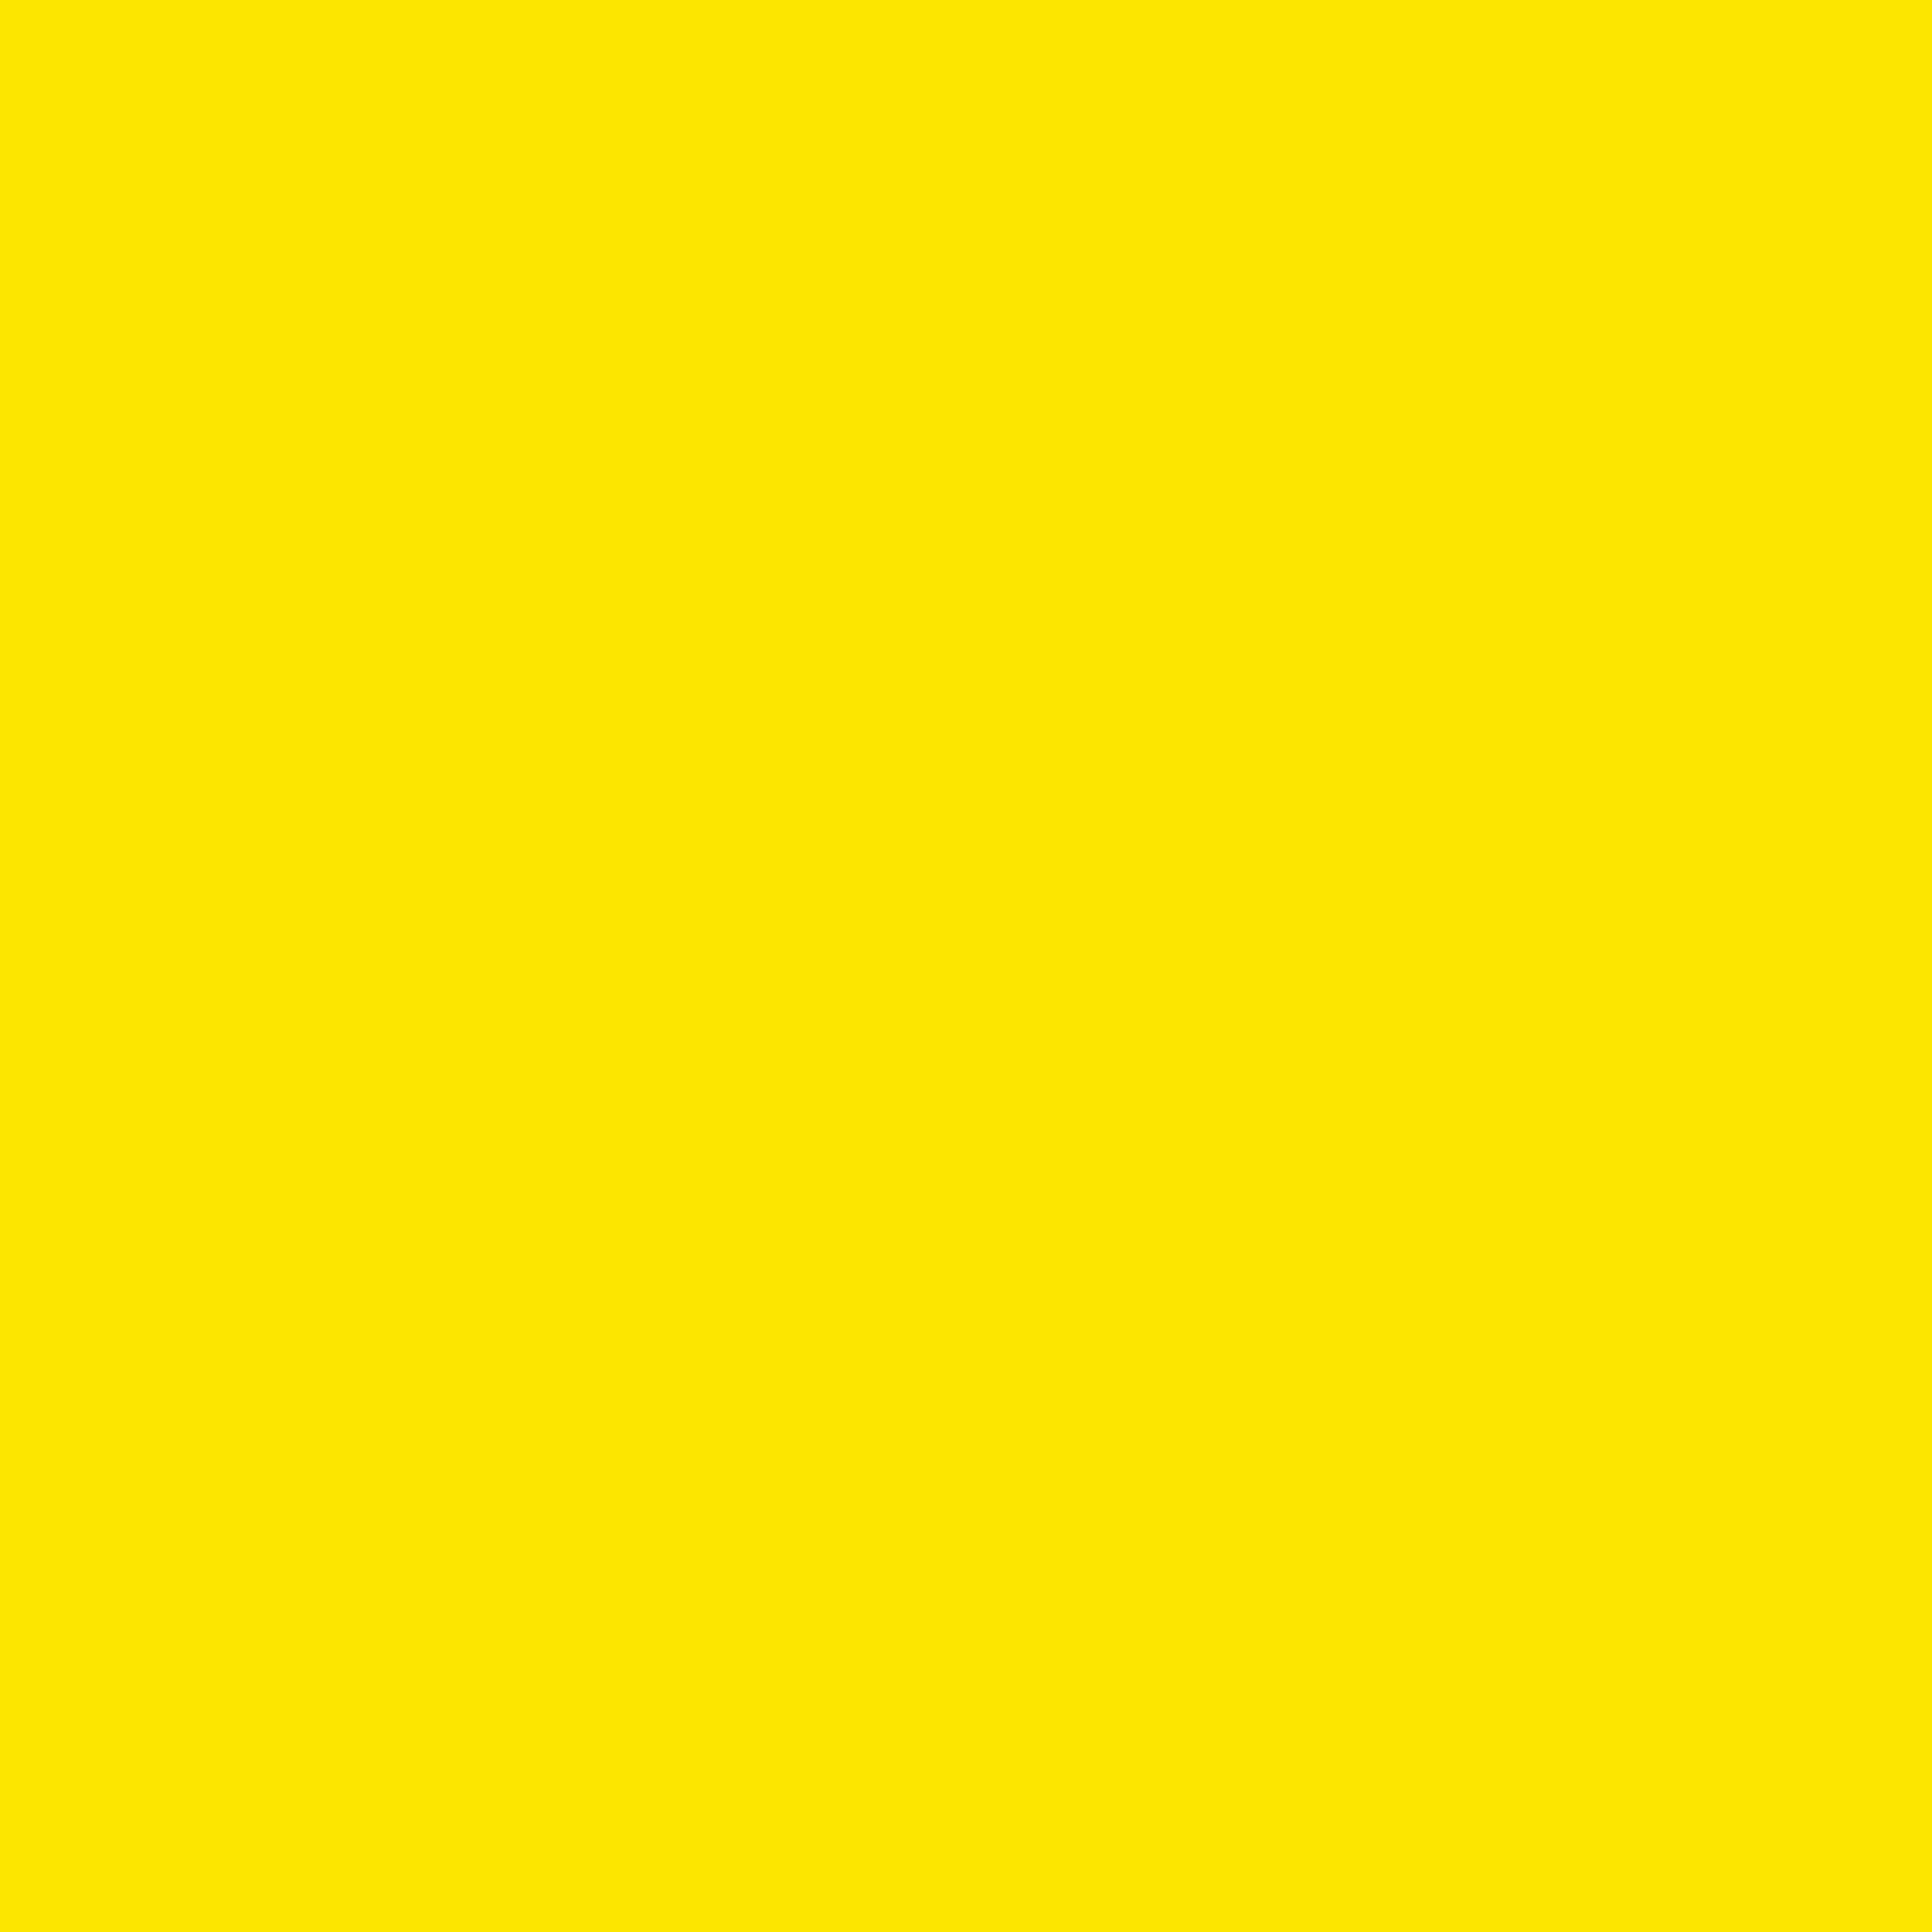 Colors: Y Yellow